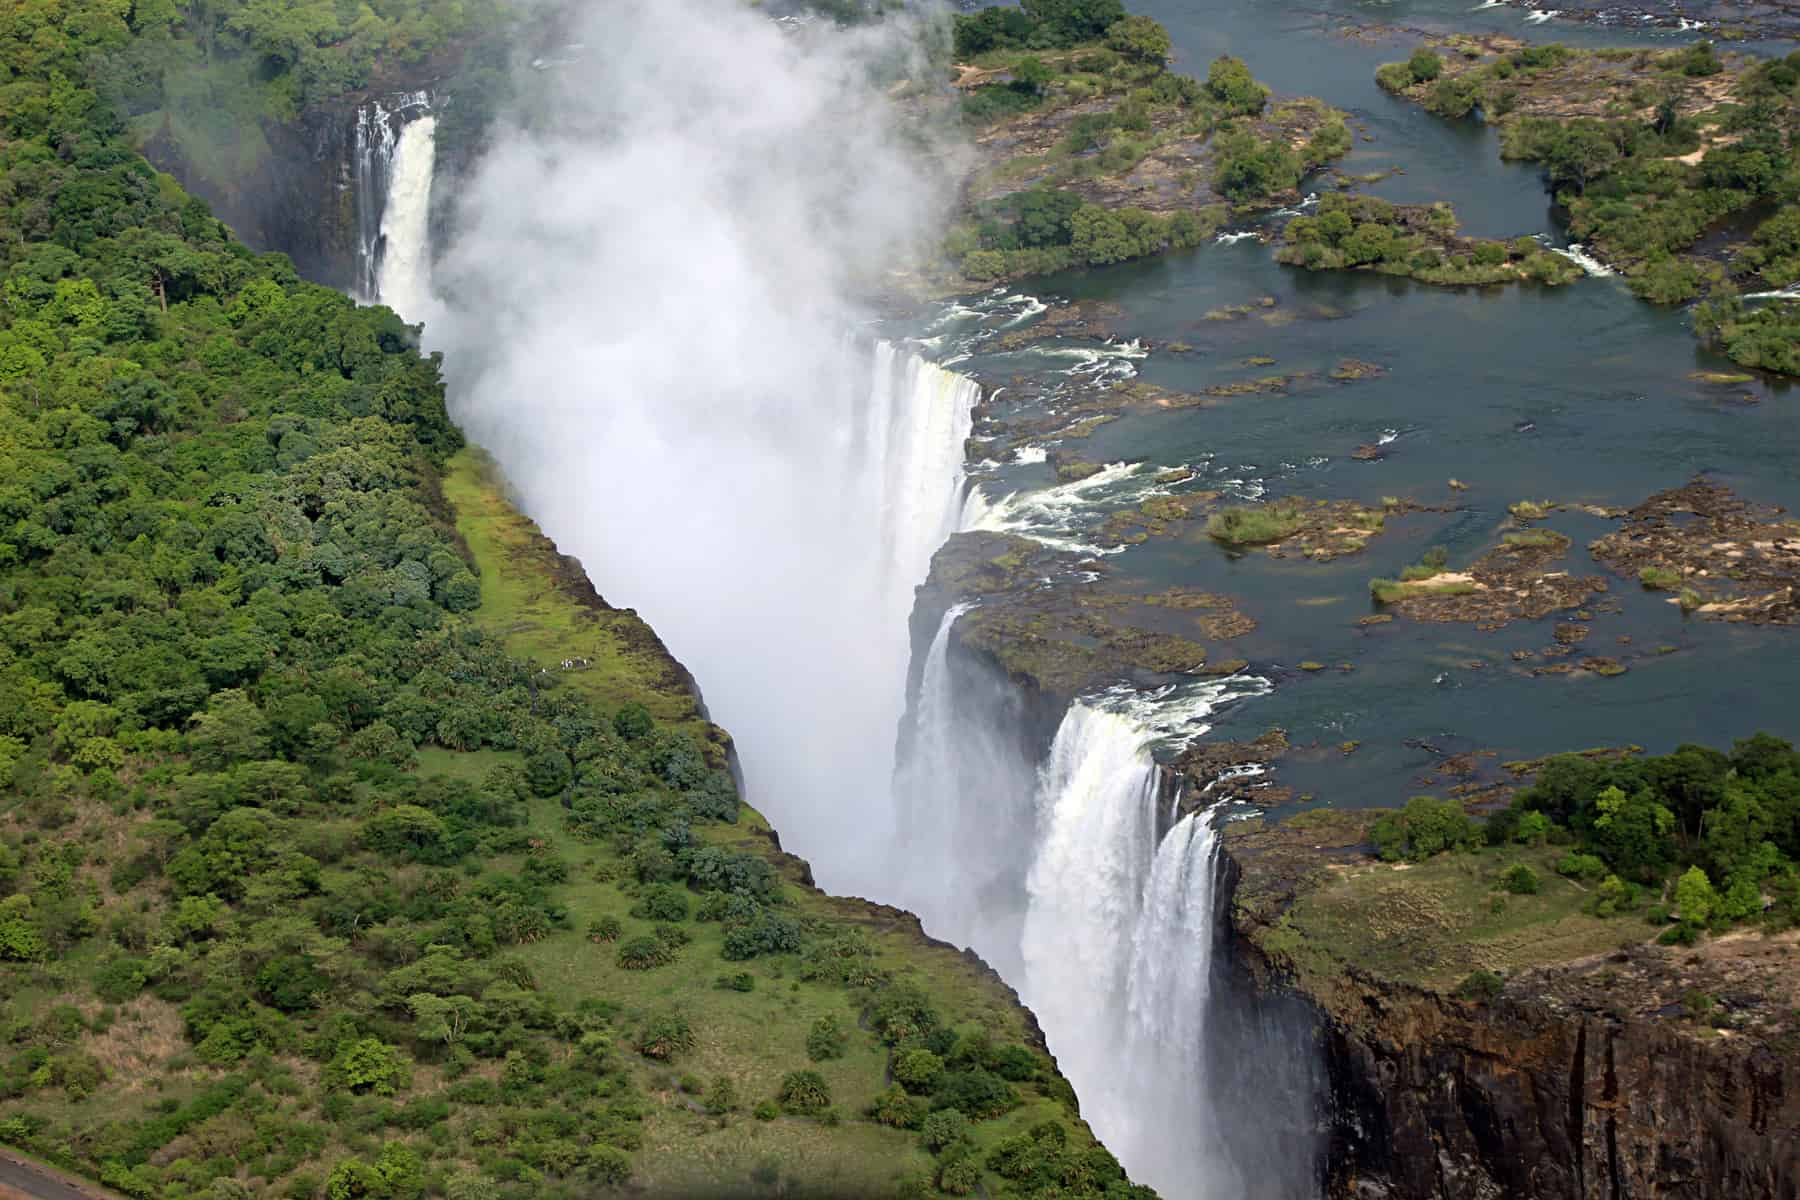 Victoria Falls on the Zambezi River. In the Zambezi basin, water is abundant but there are challenges in getting that water to the people who need it, particularly as the population grows in the future. (cc) Pius Mahimbi | Flickr